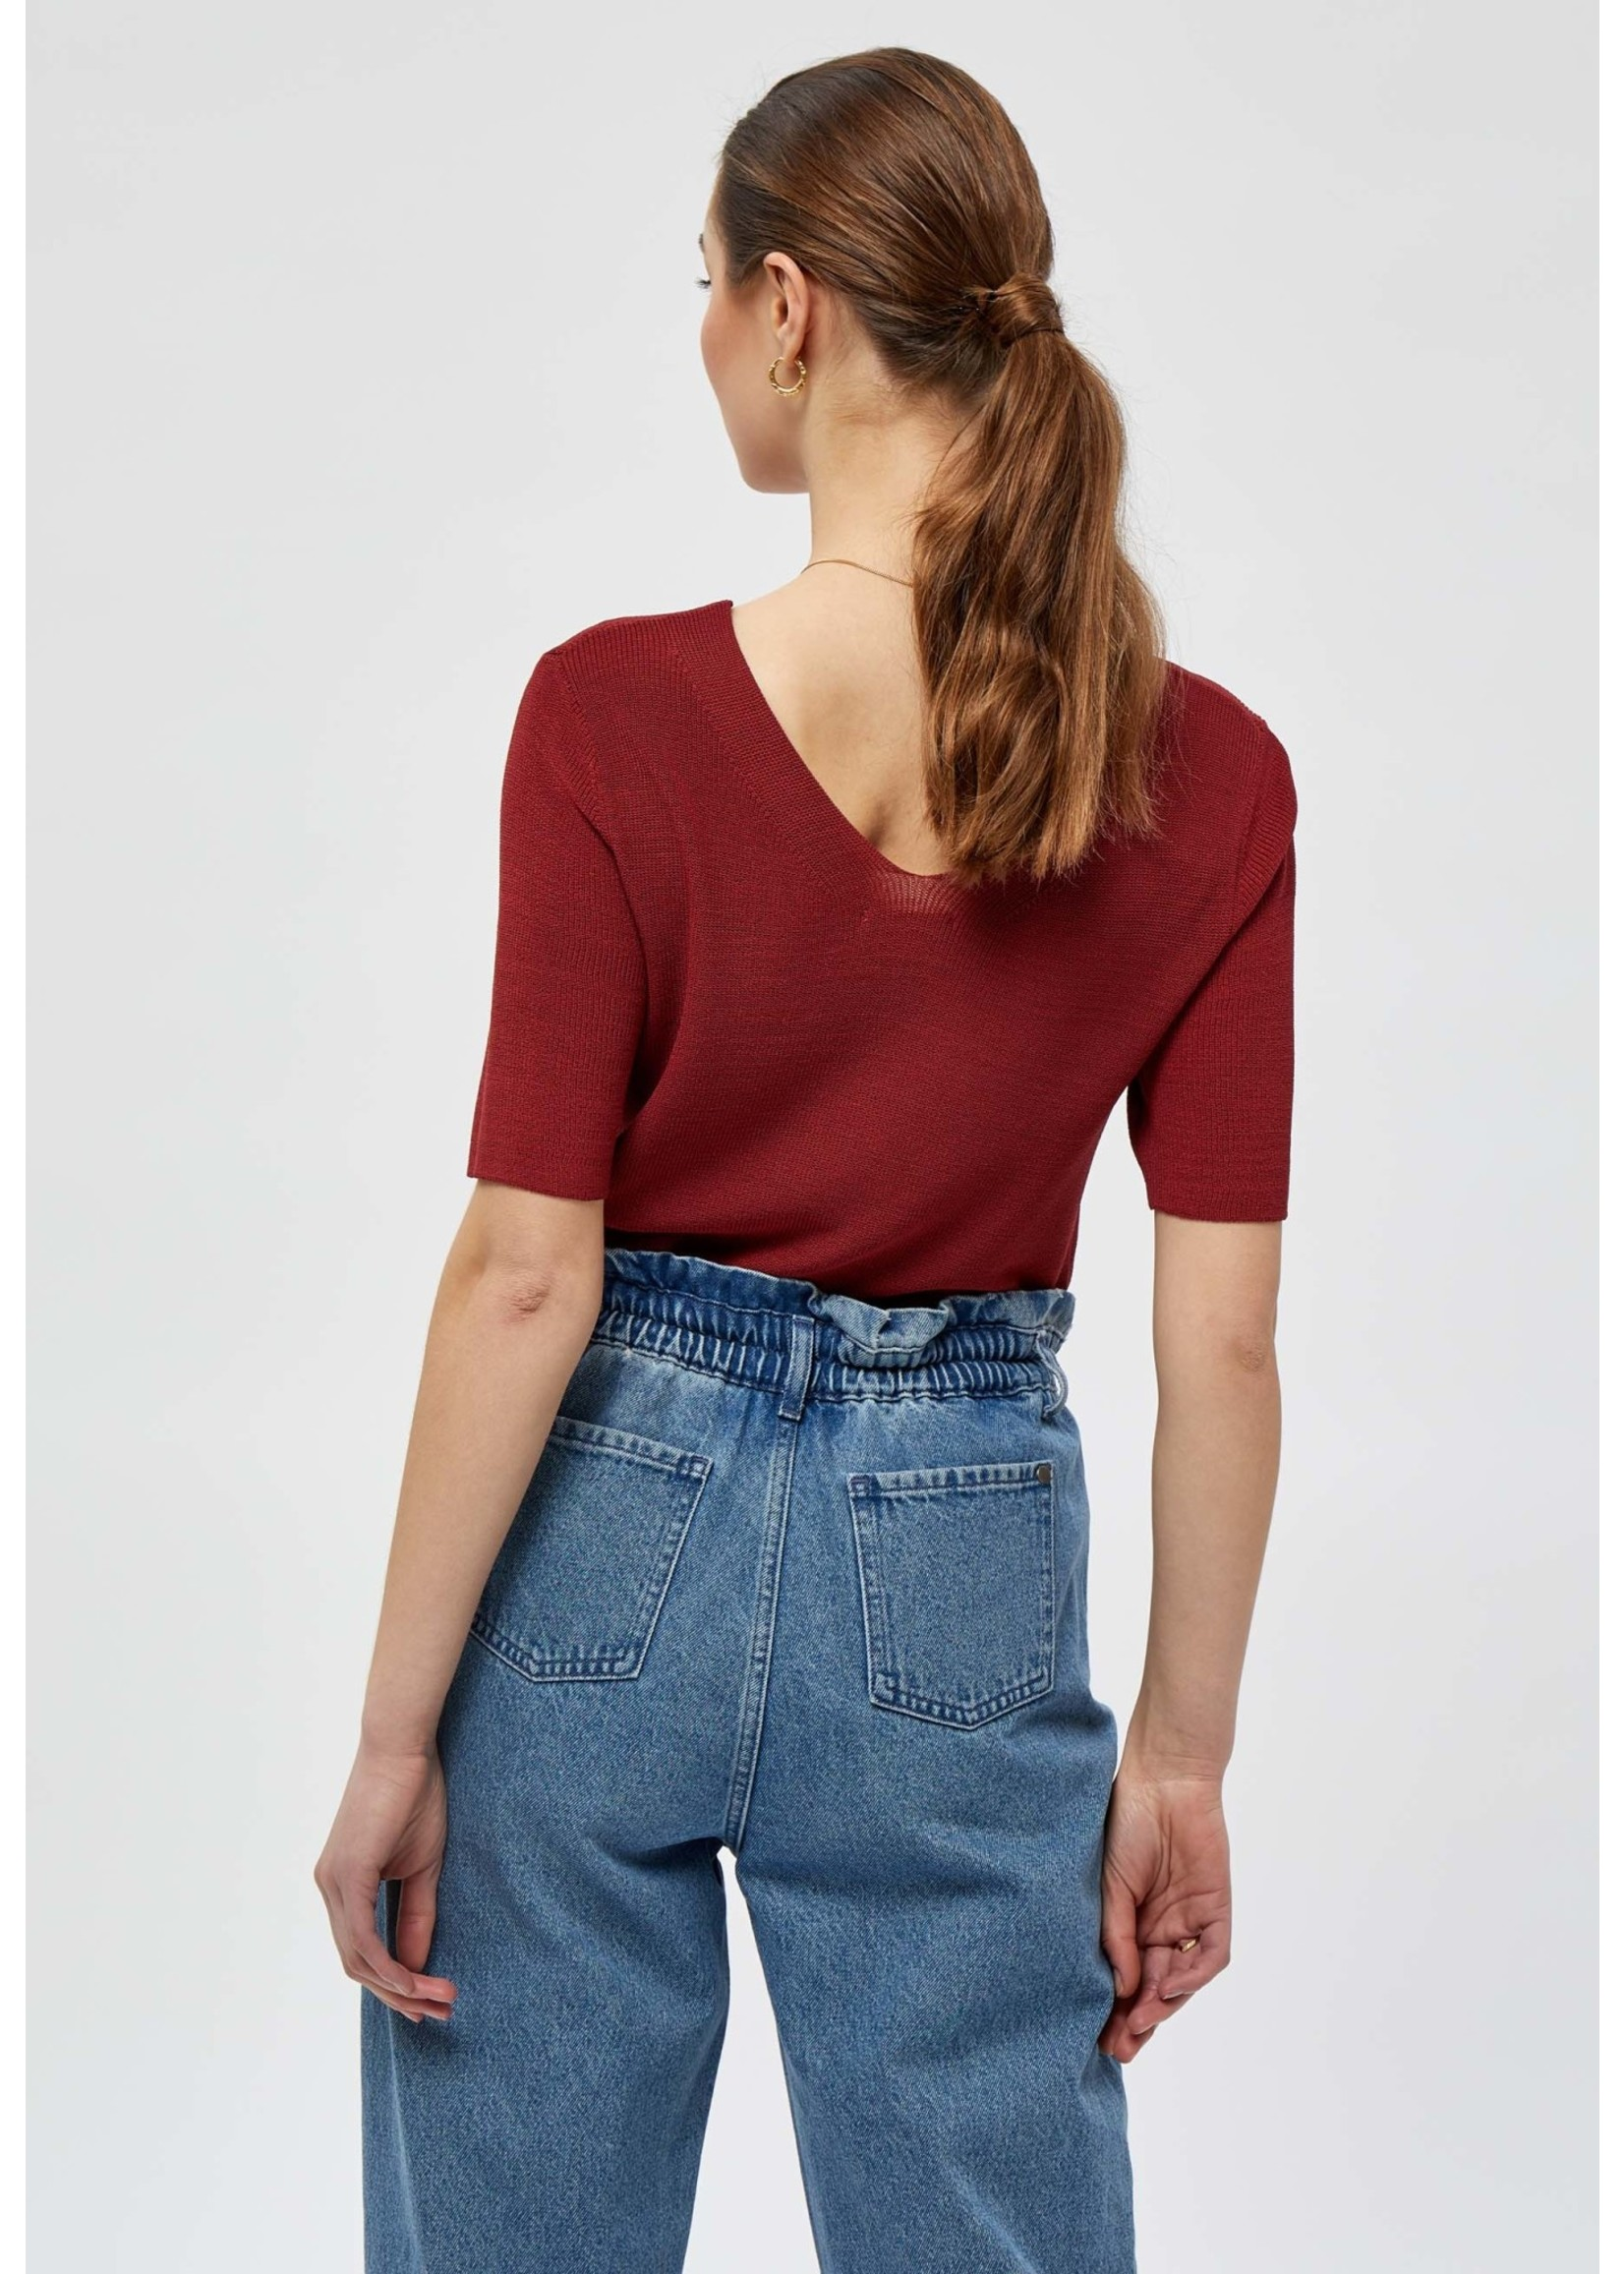 MINUS Bex knit tee Berry red